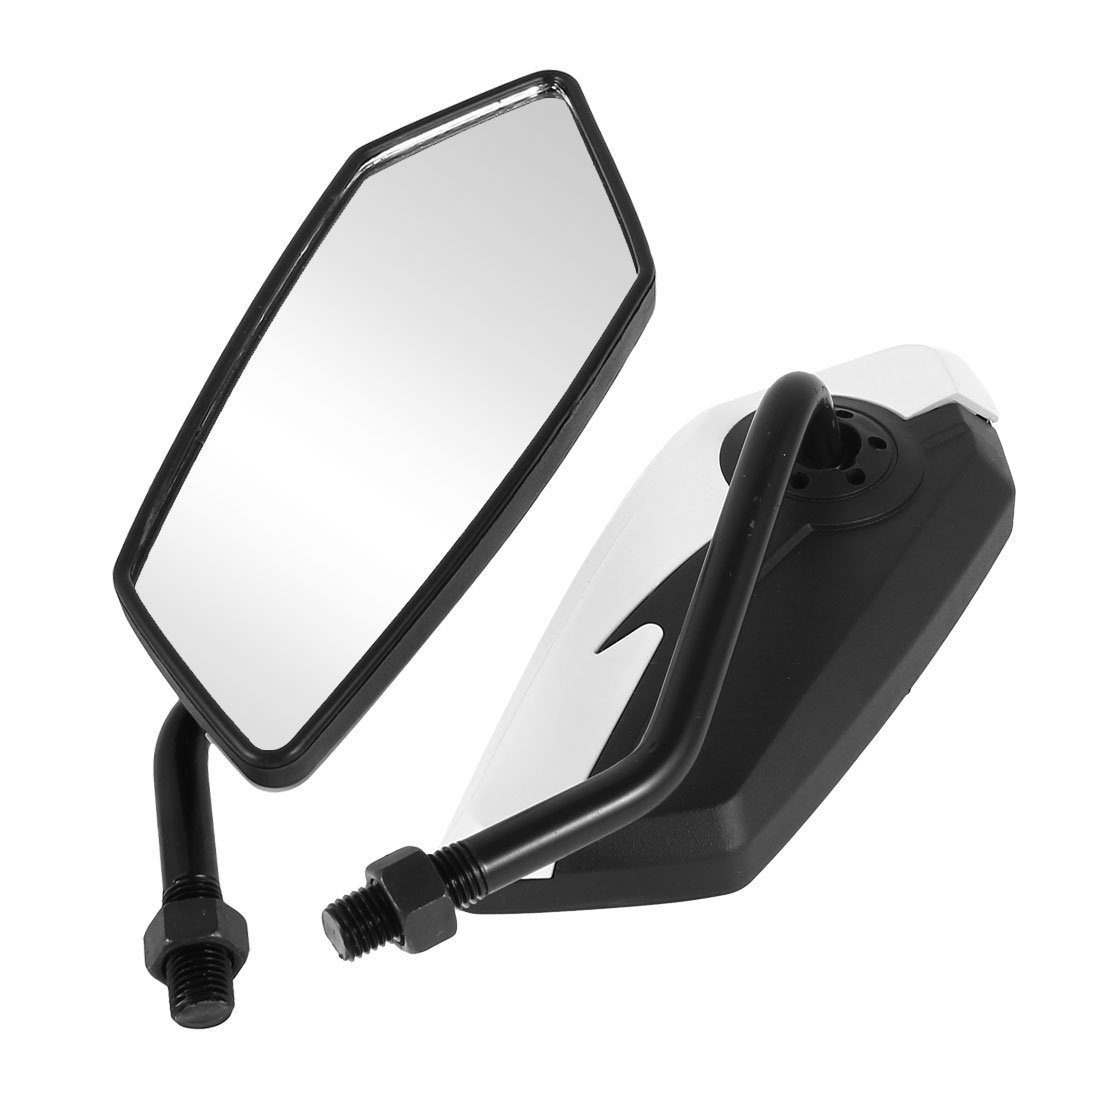 2 Pcs Black White Plastic Casing Rearview Mirror for Motorcycle Motorbike